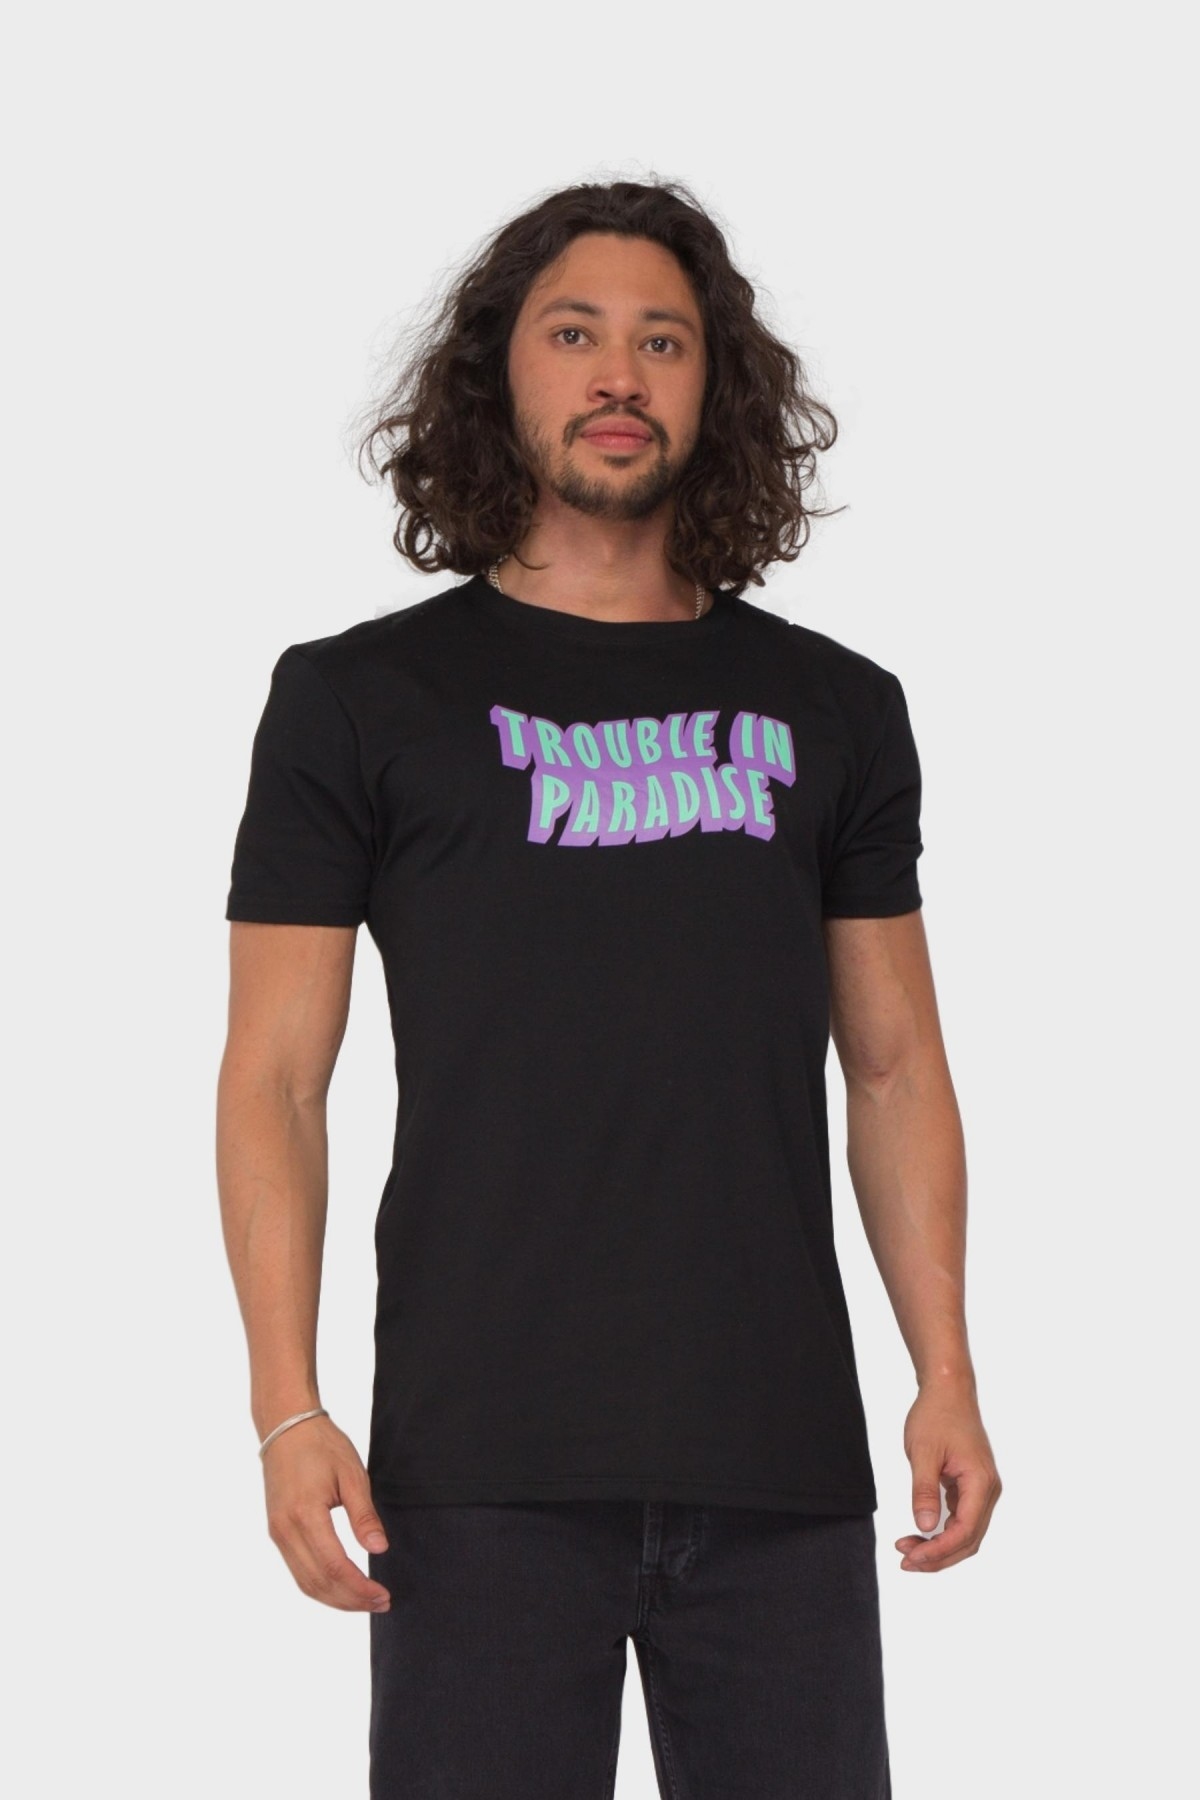 Pleasant Trouble in Paradise Tee in Black